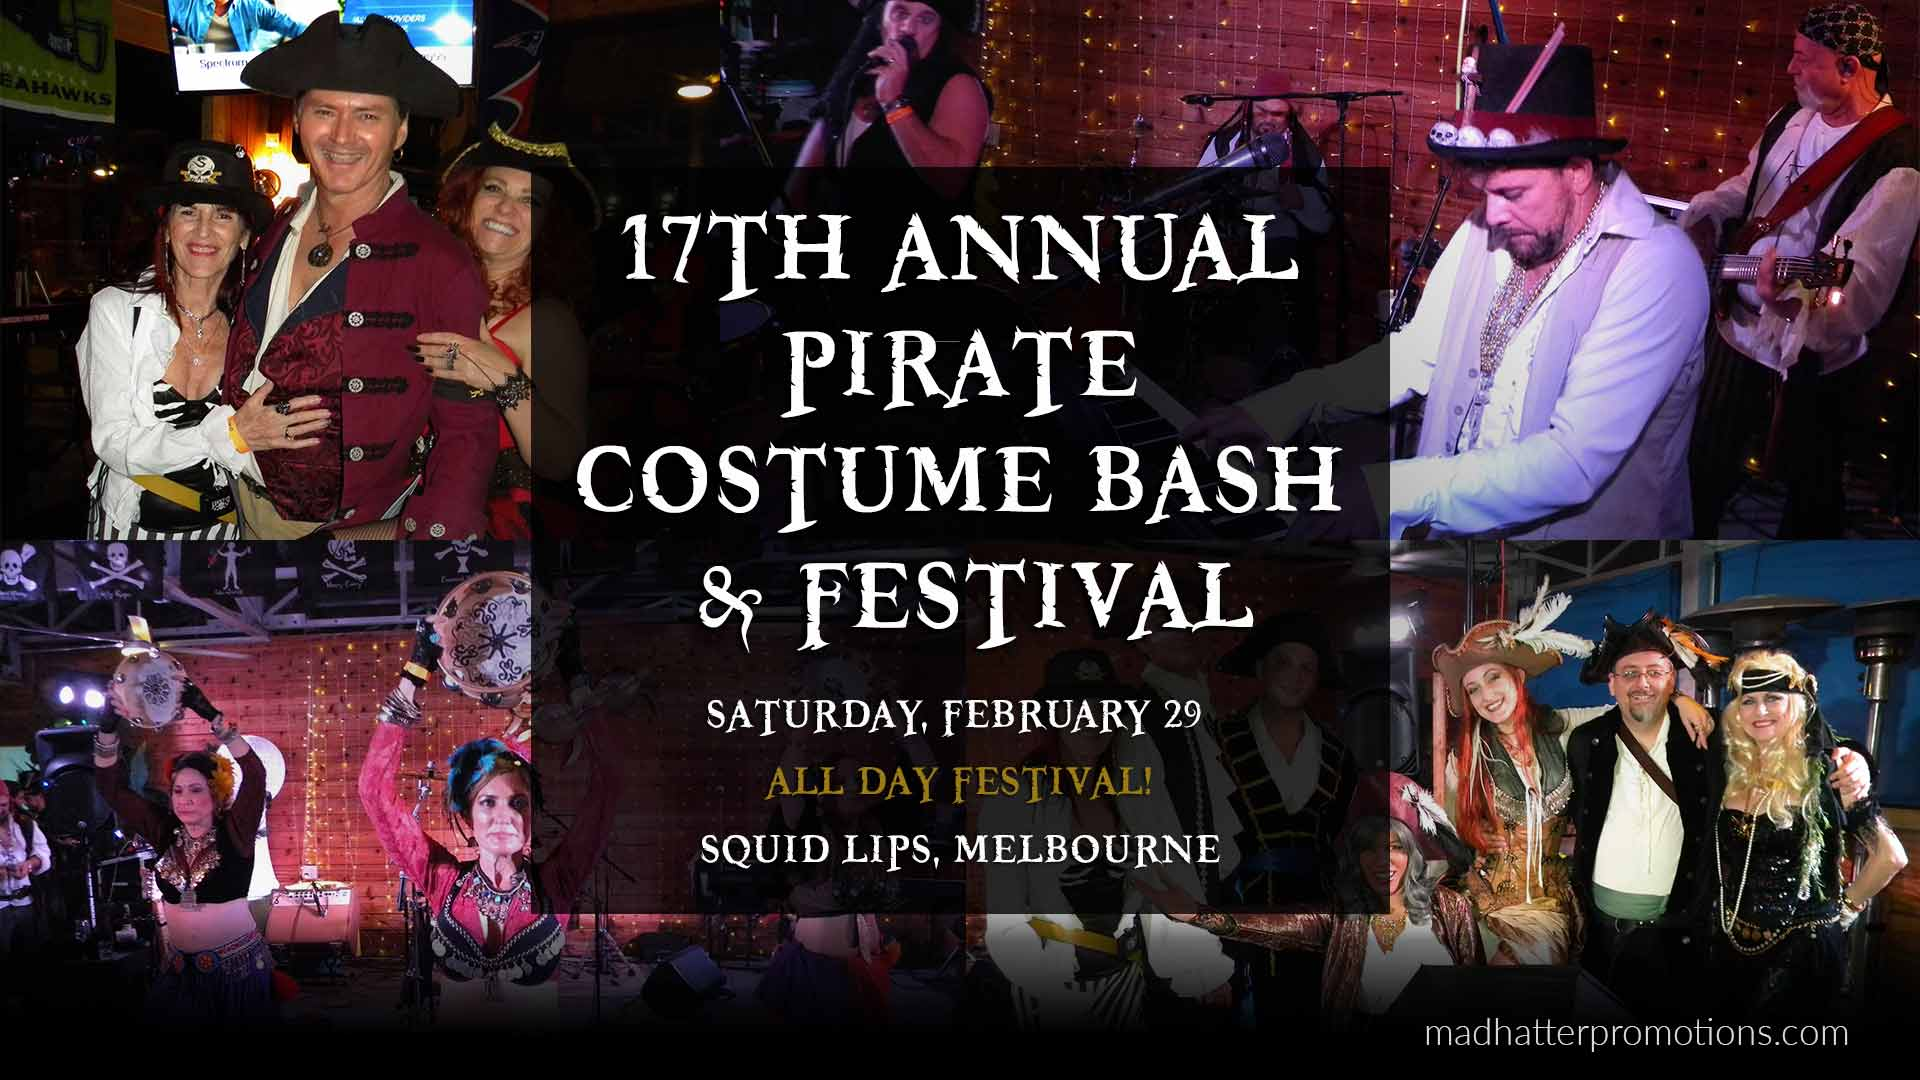 17th Annual Pirate Costume Bash and Festival Squid Lips Melbourne